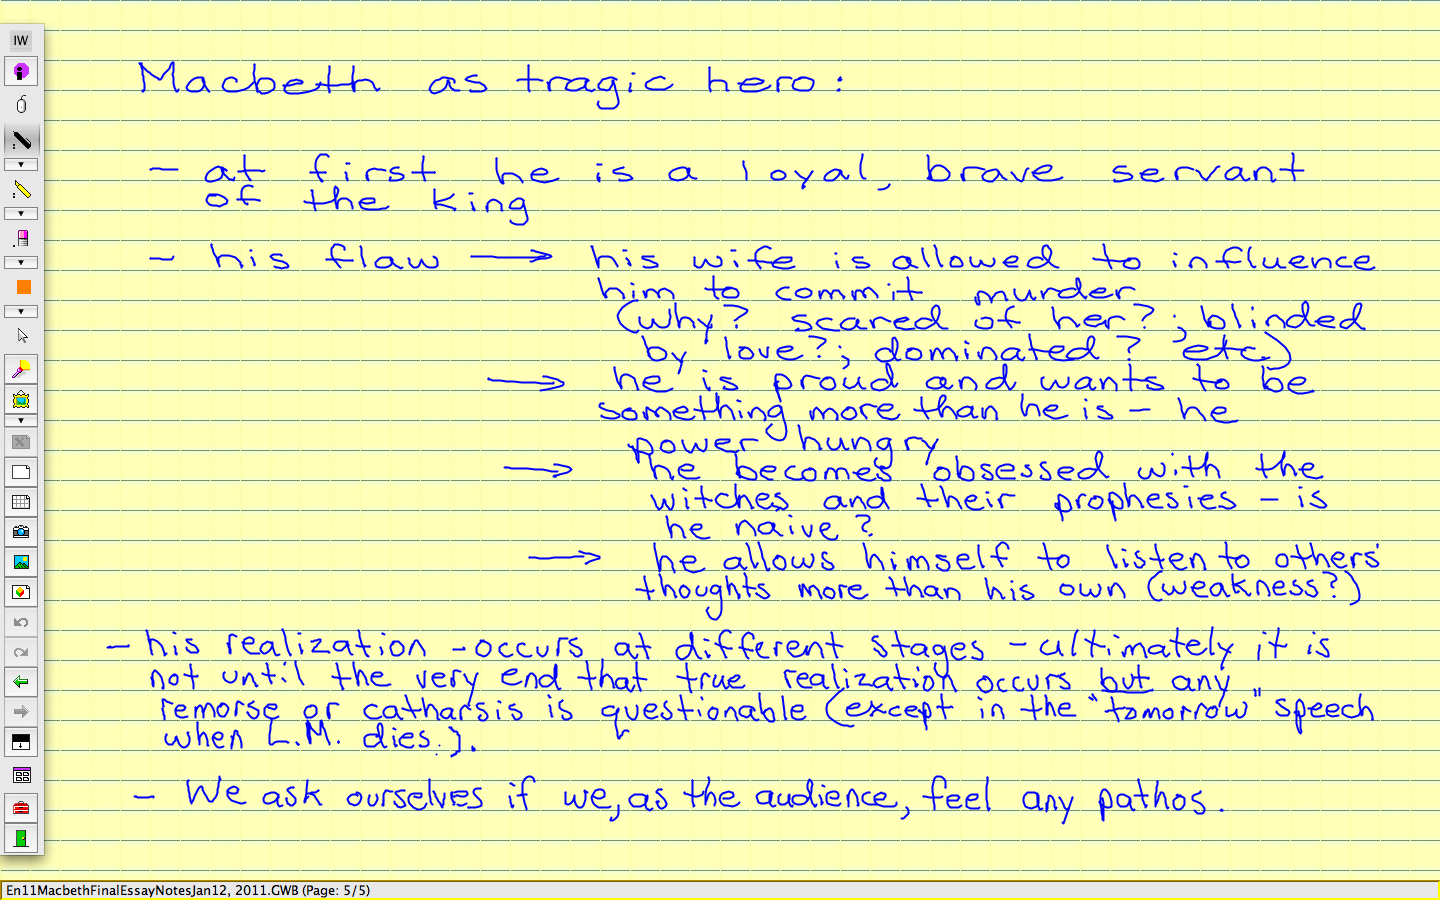 character sketch essay on macbeth macbeth character sketch examples of character sketches